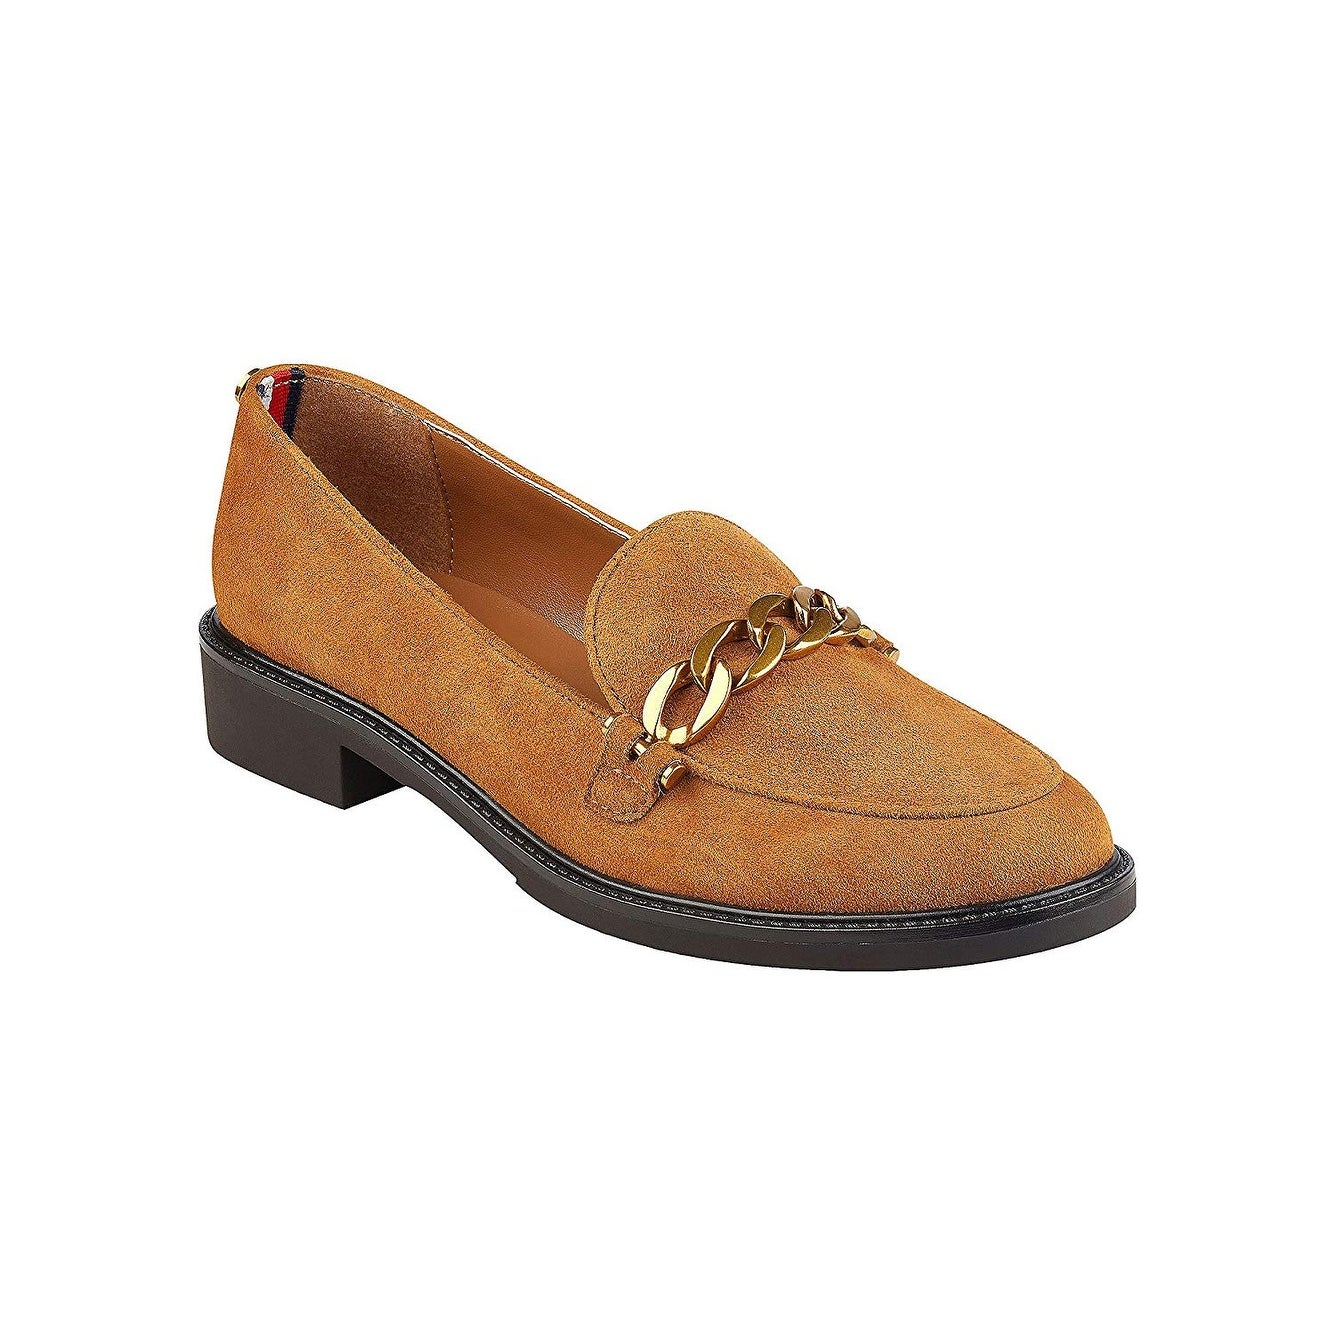 7cb5fc349 Shop Tommy Hilfiger Womens Bosse Leather Closed Toe Loafers - Free ...